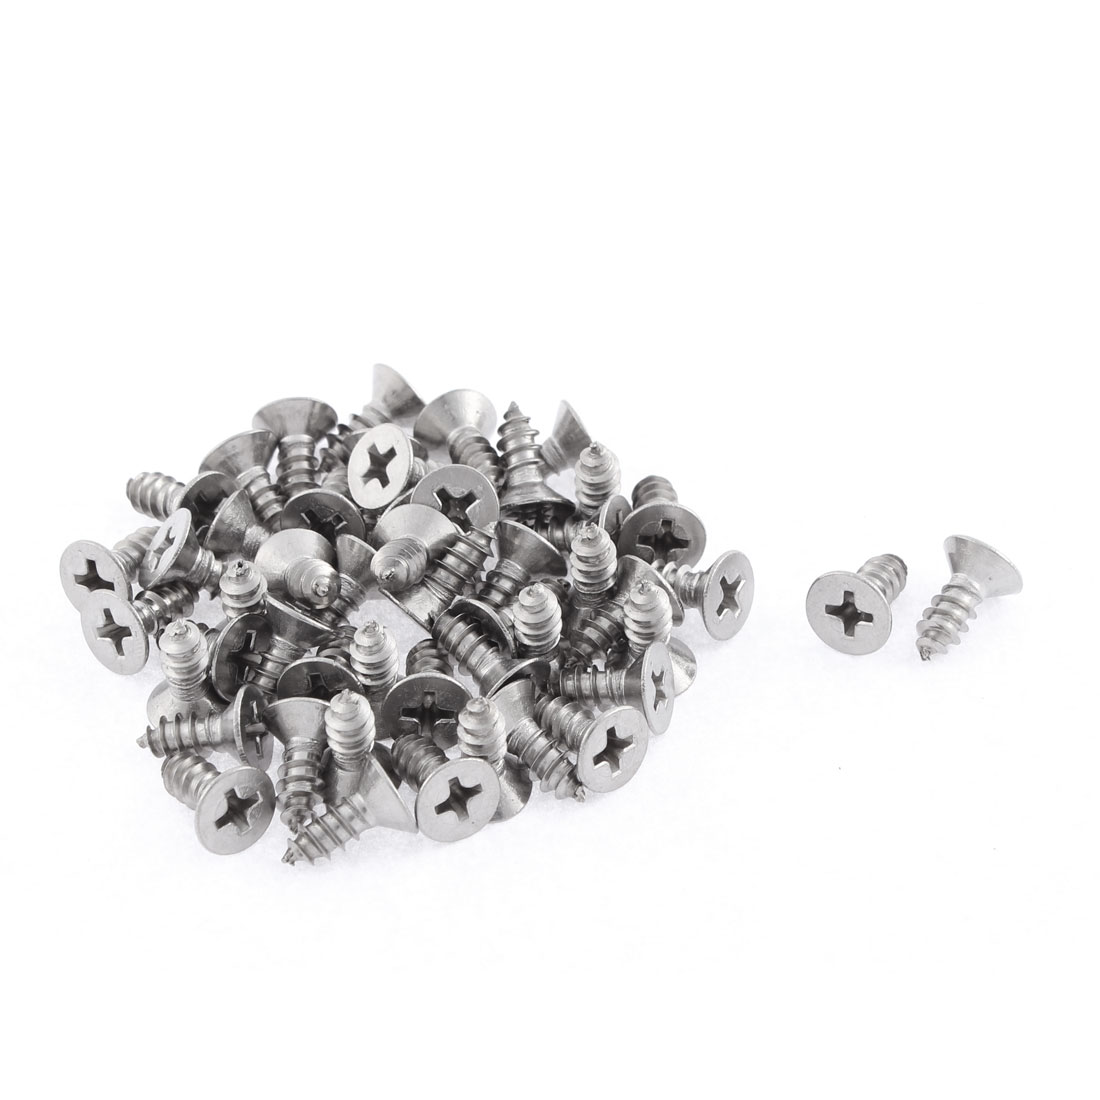 50 Pcs 4.8mmx13mm Stainless Steel Phillips Flat Head Sheet Self Tapping Screws